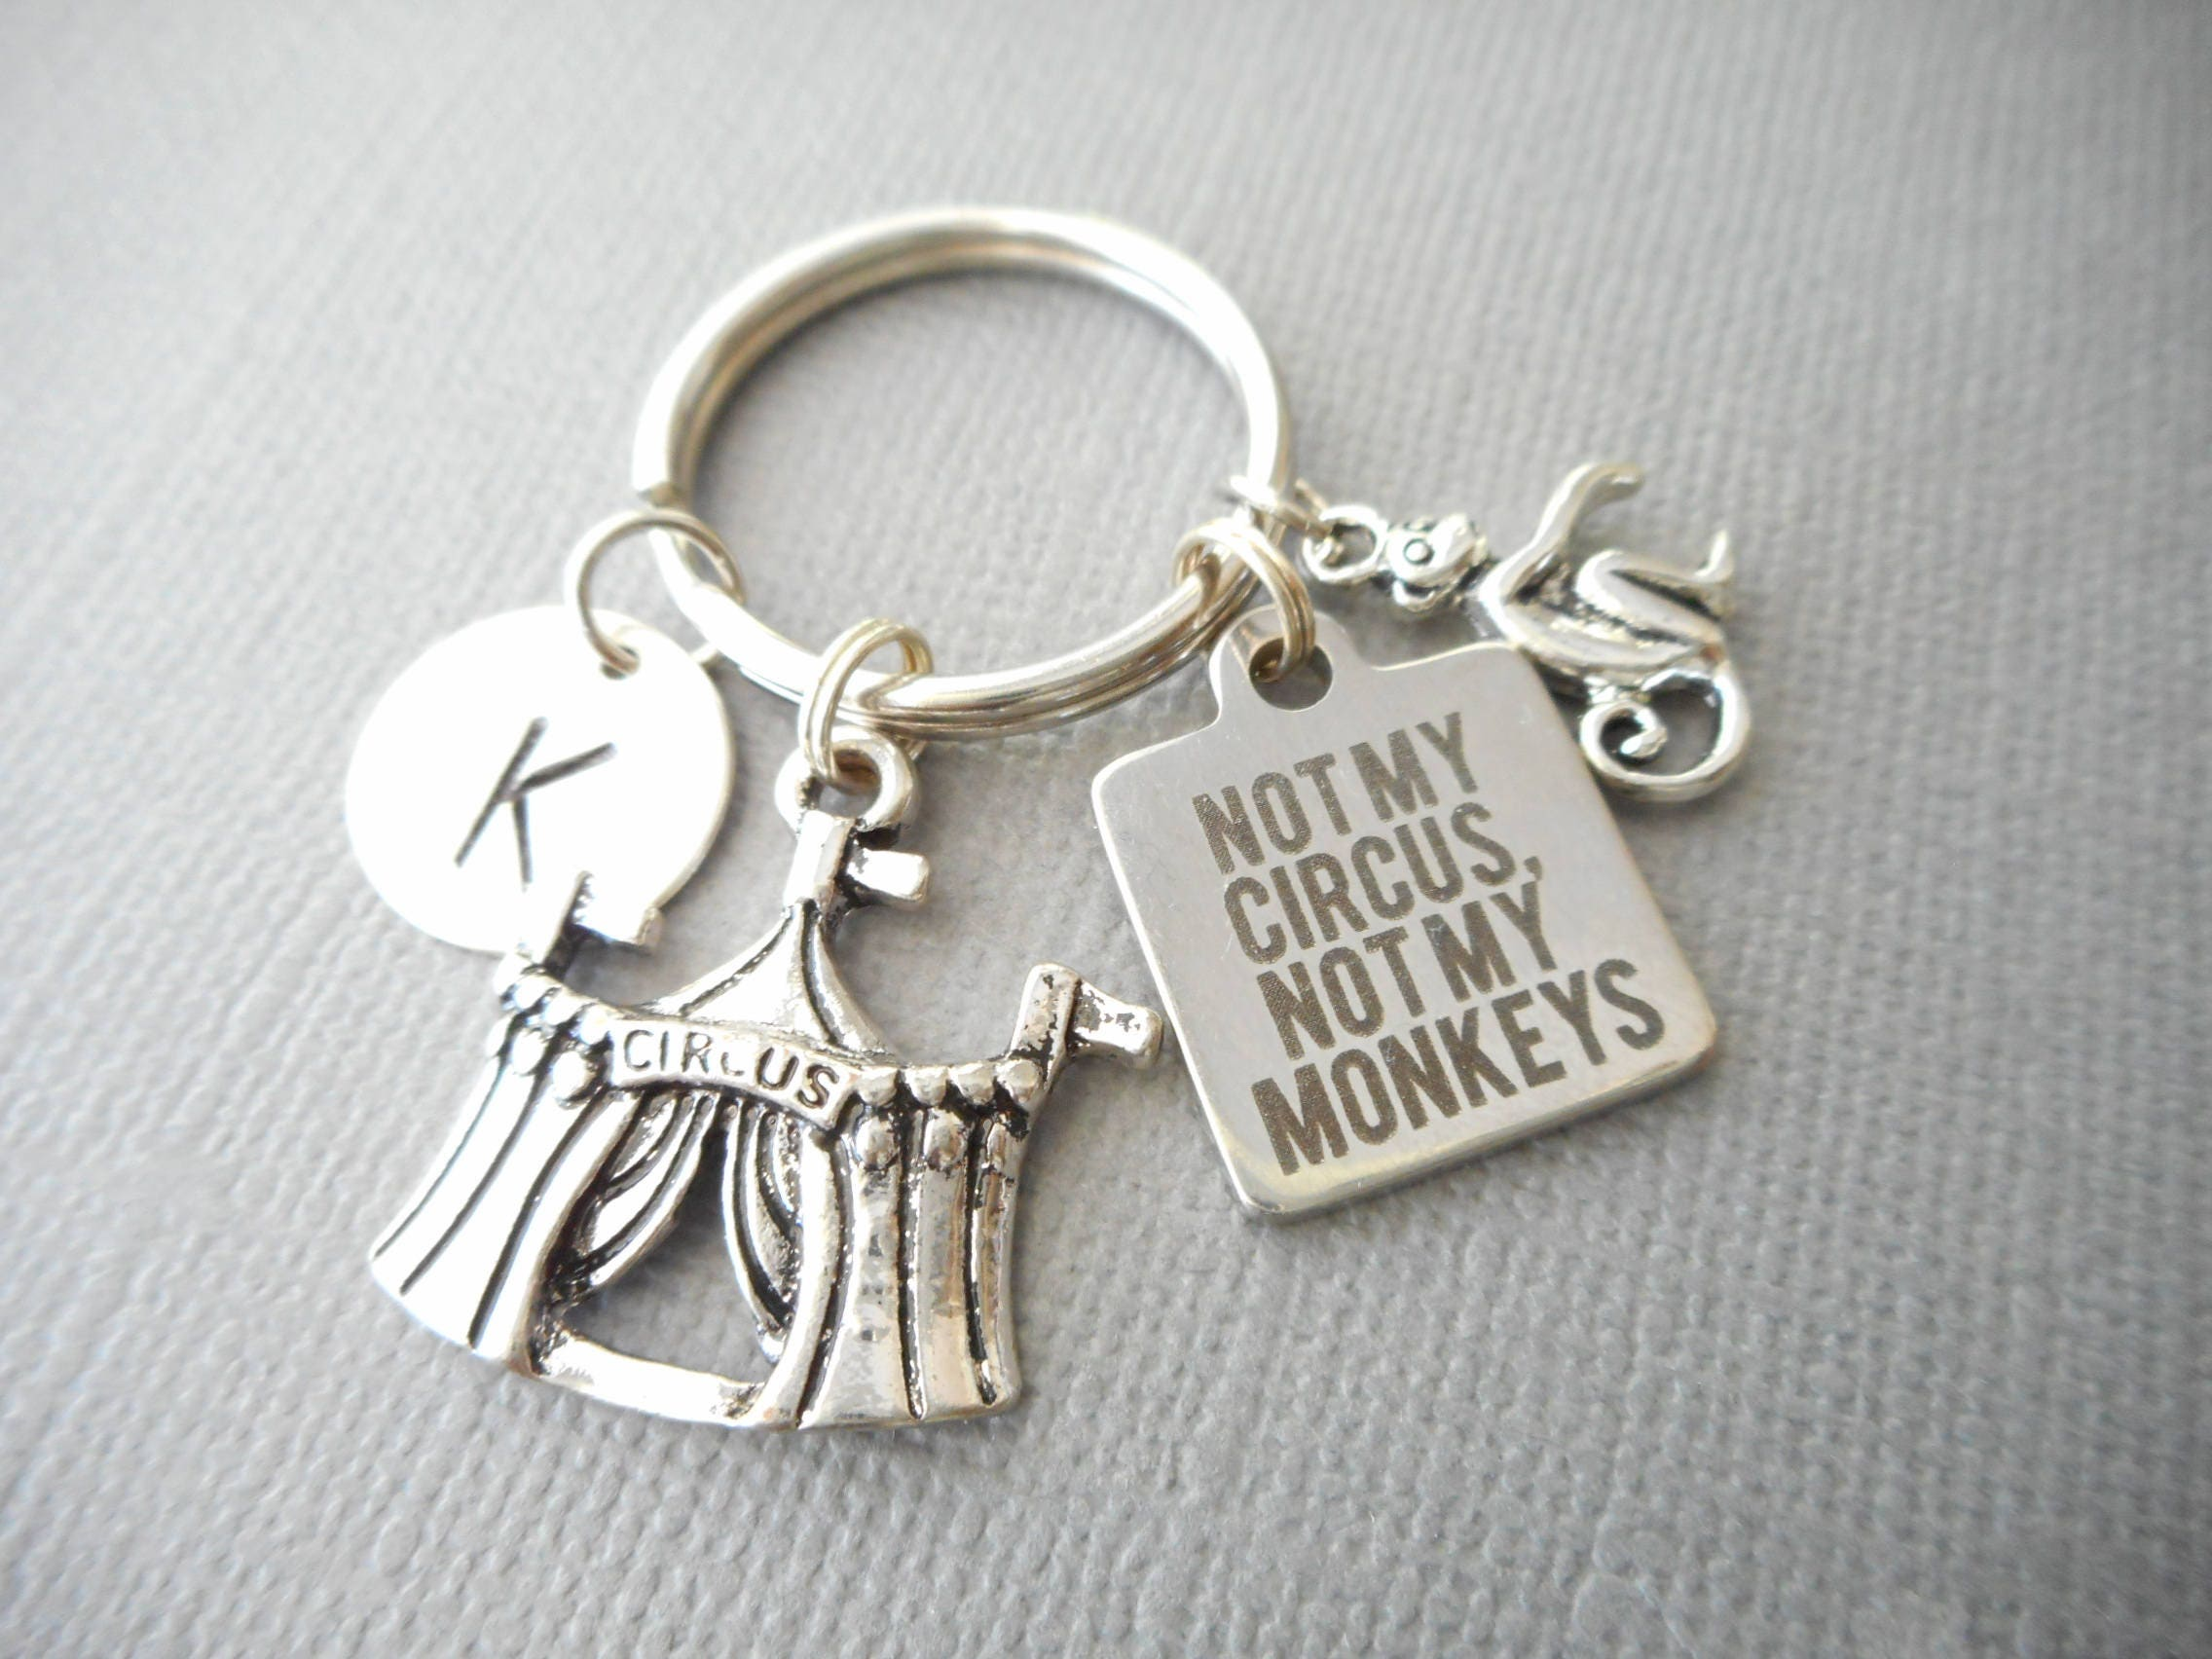 Not My Circus Monkeys Initial Keychain Quote Jewelry Office Gift